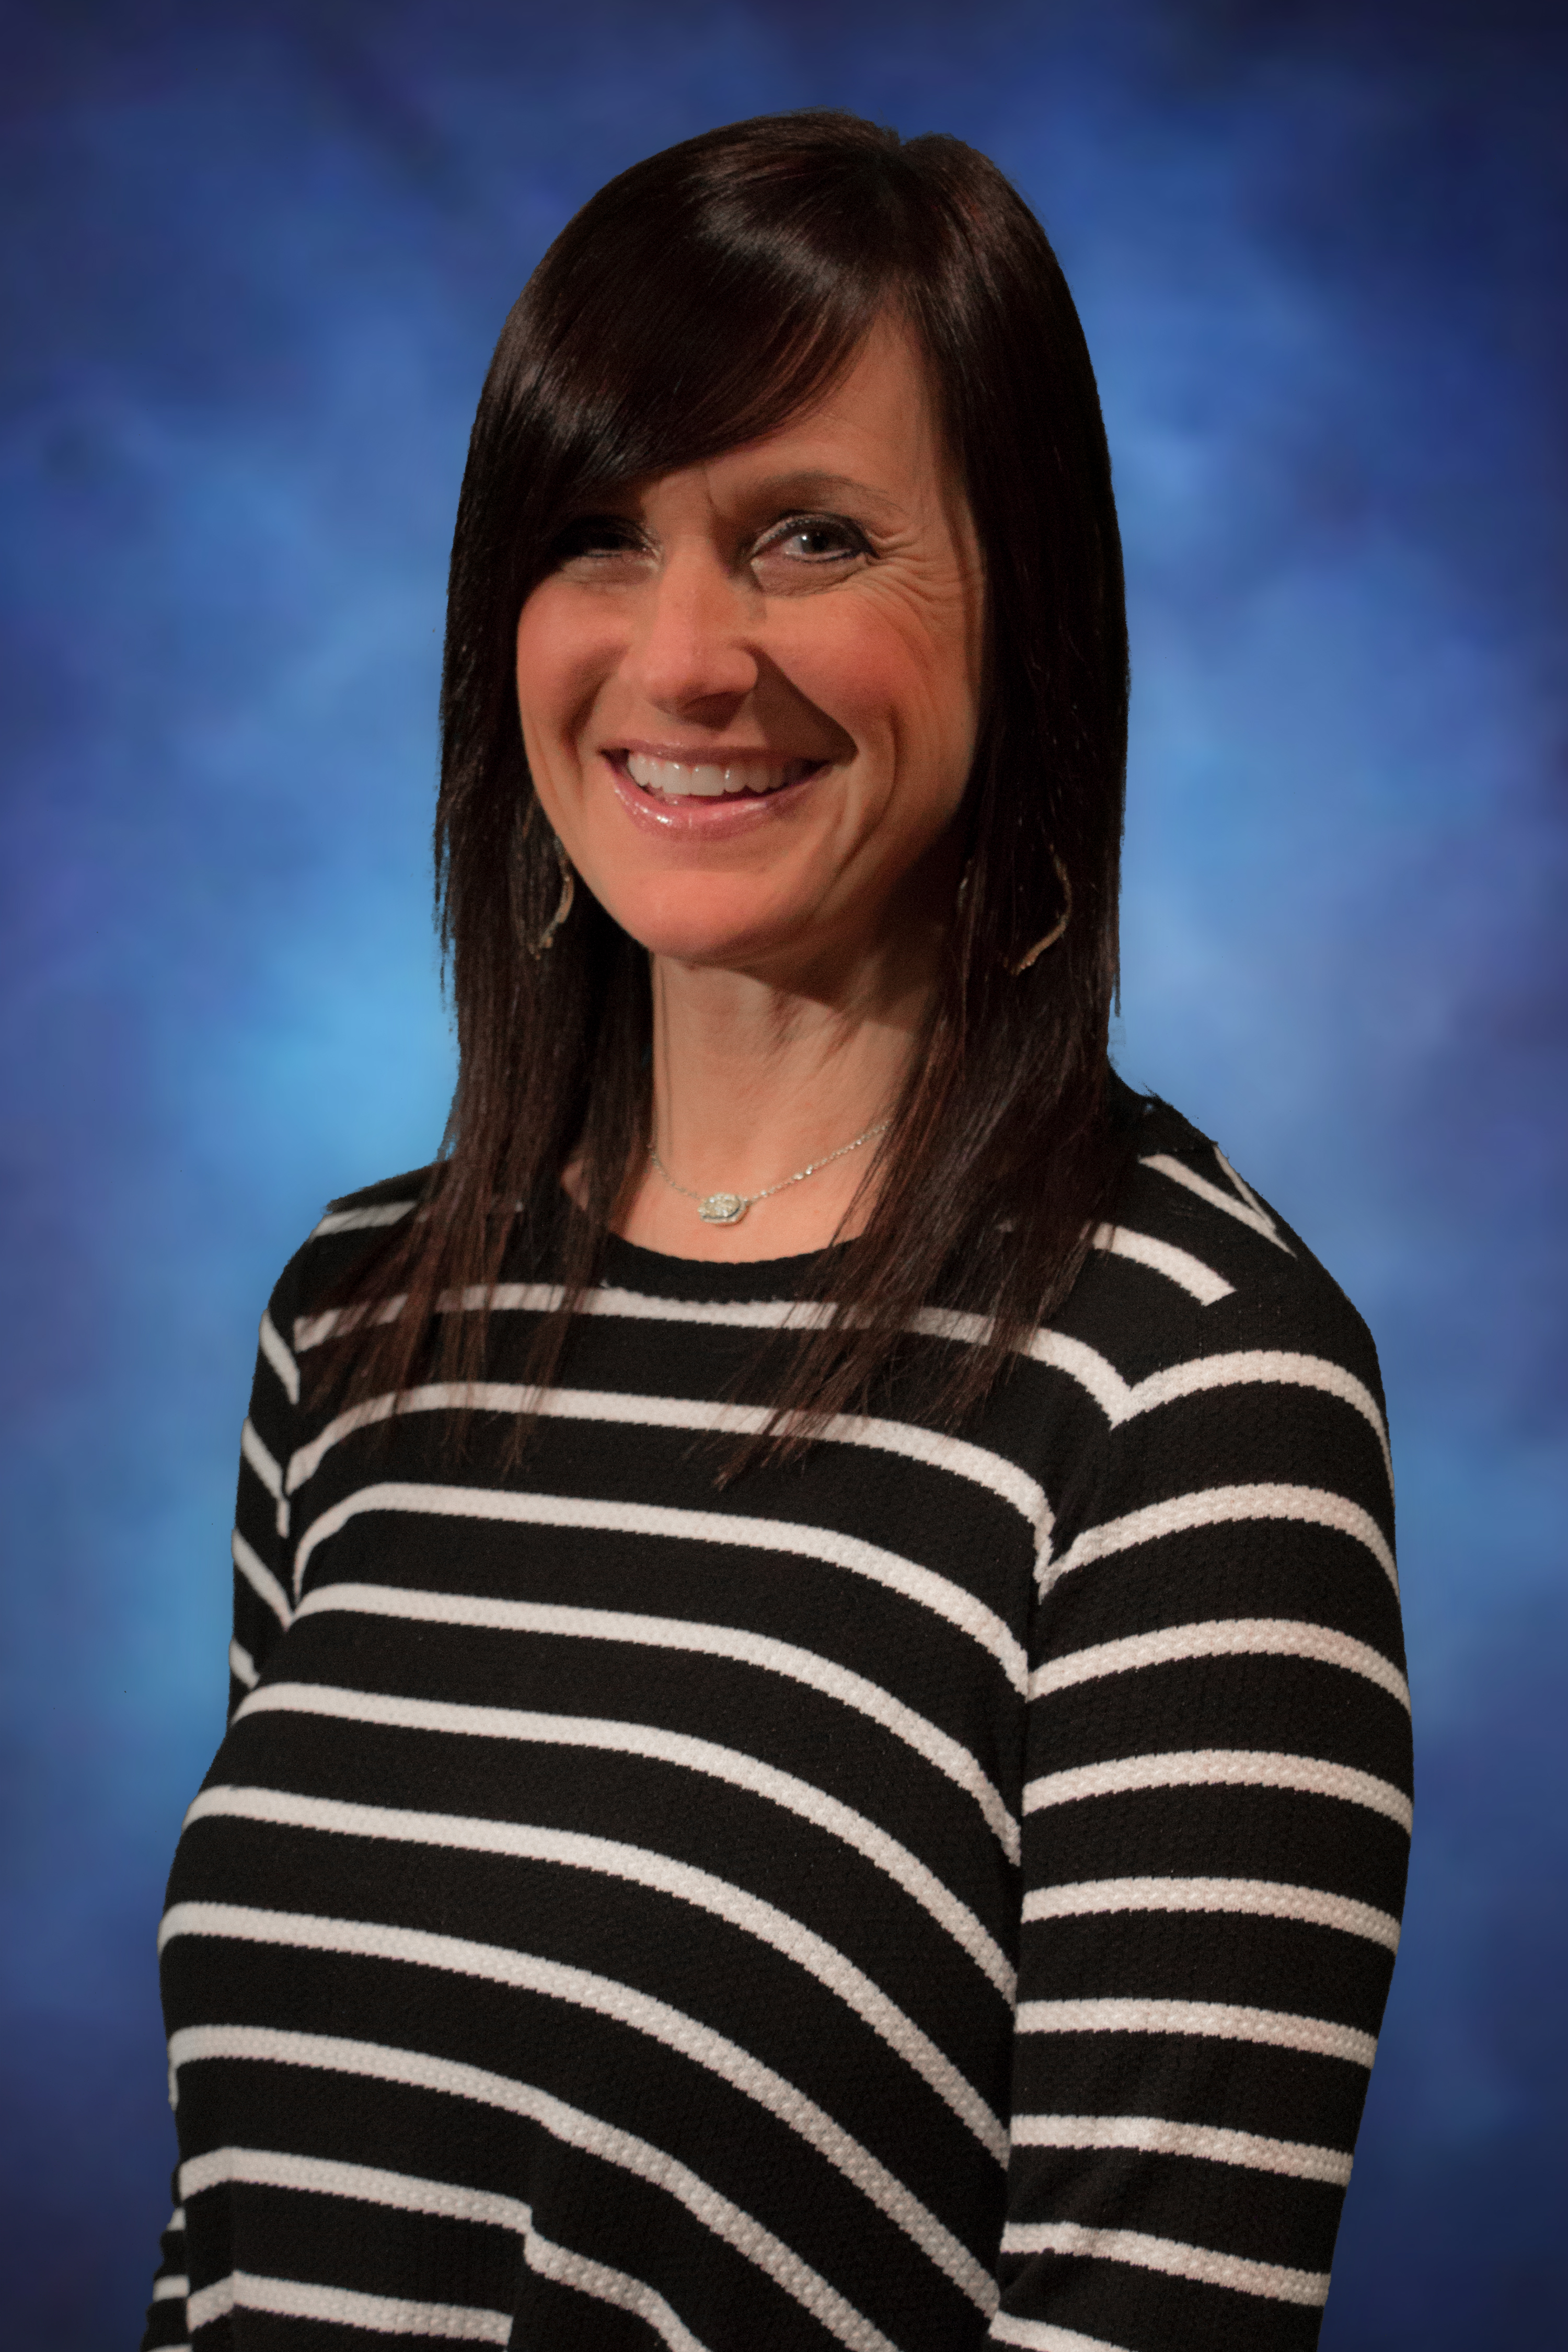 Brande Schriewer, Lone Star Elementary Campus Teacher of the Year 2017